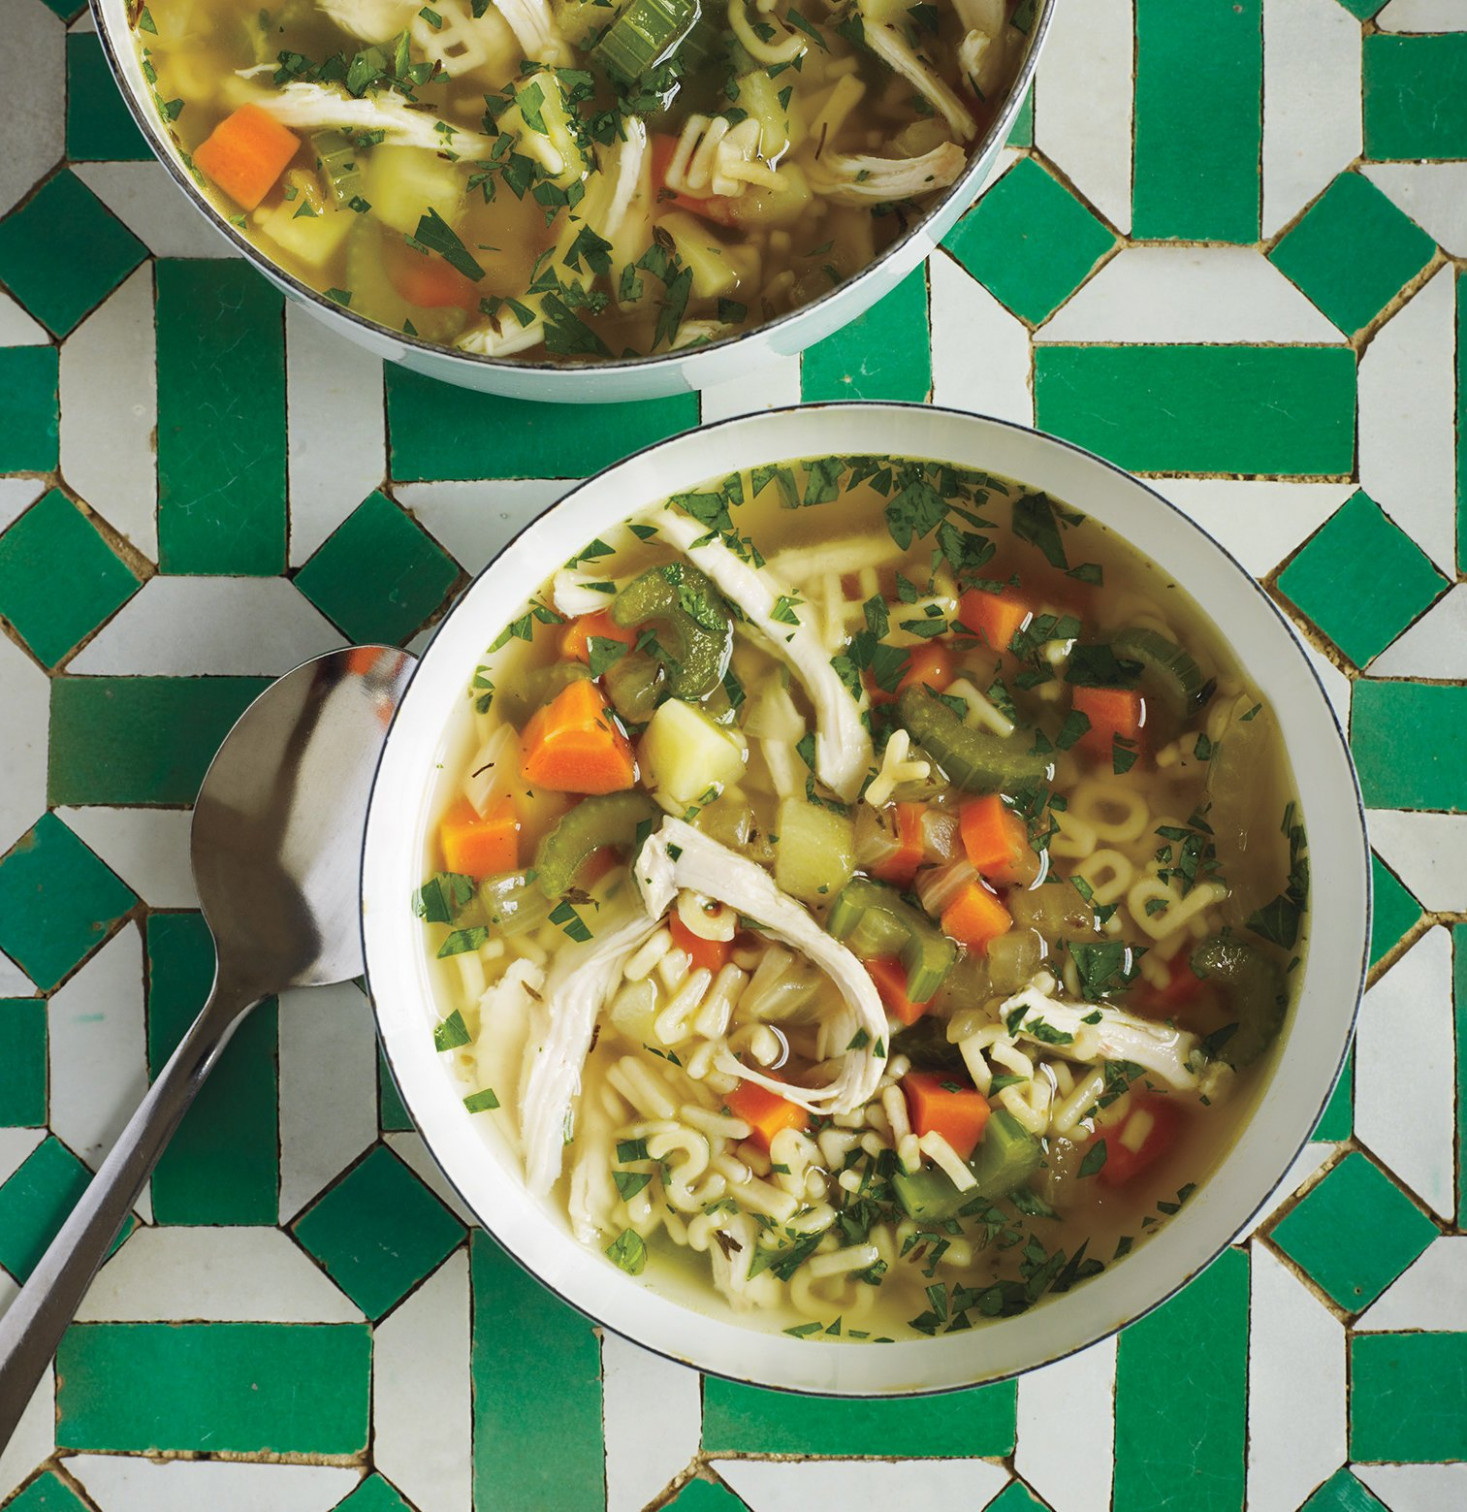 11 Make-Ahead Family Recipes - Real Simple